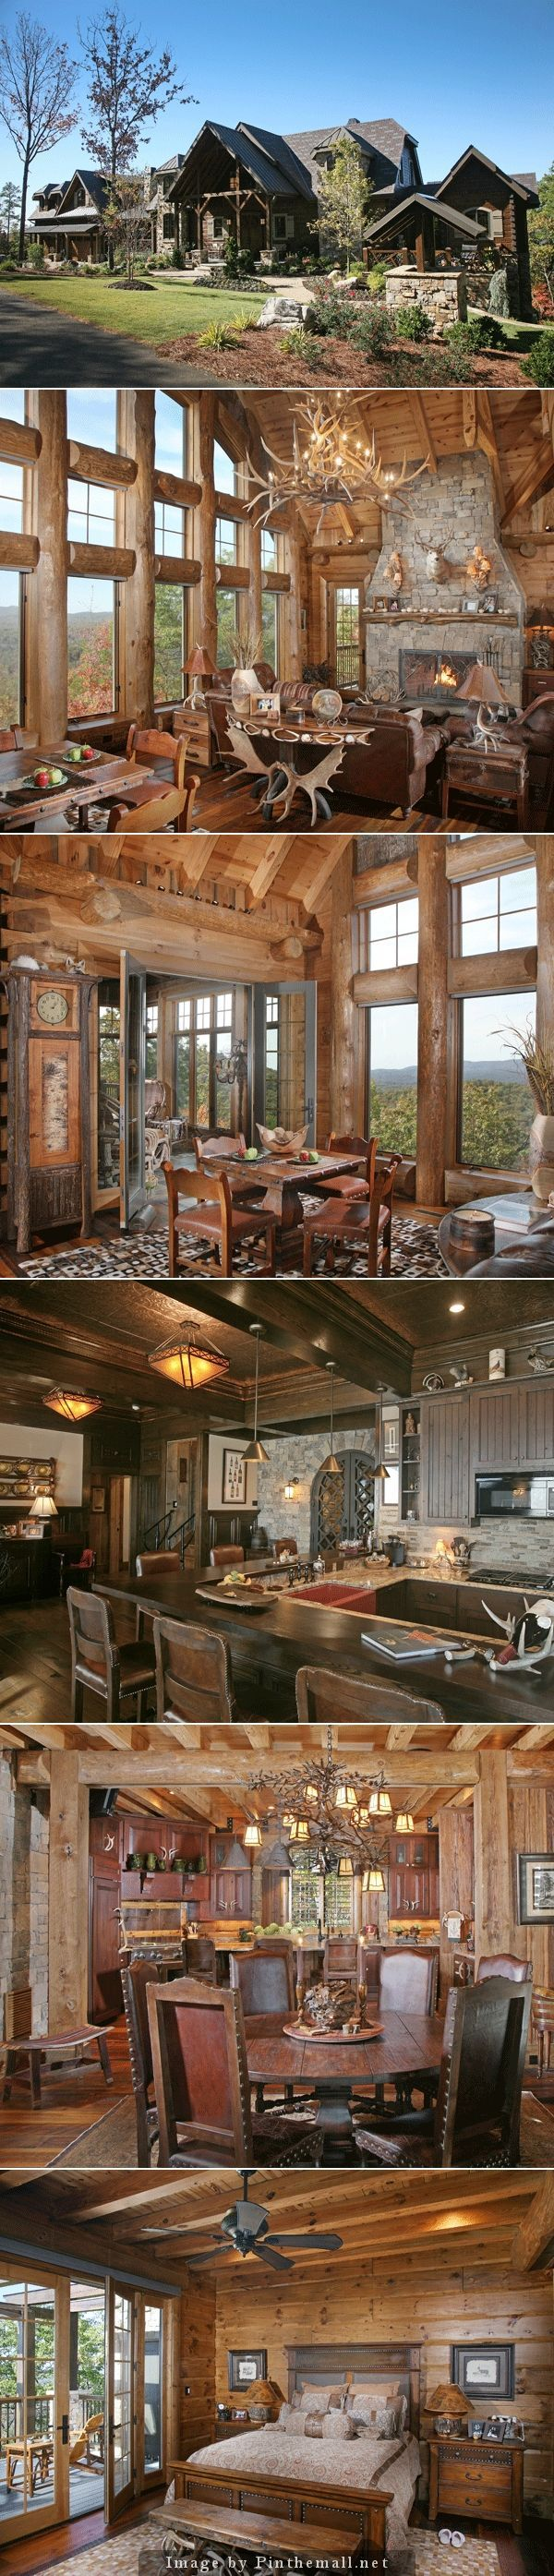 Log Home Beauty - created via http://pinthemall.net: